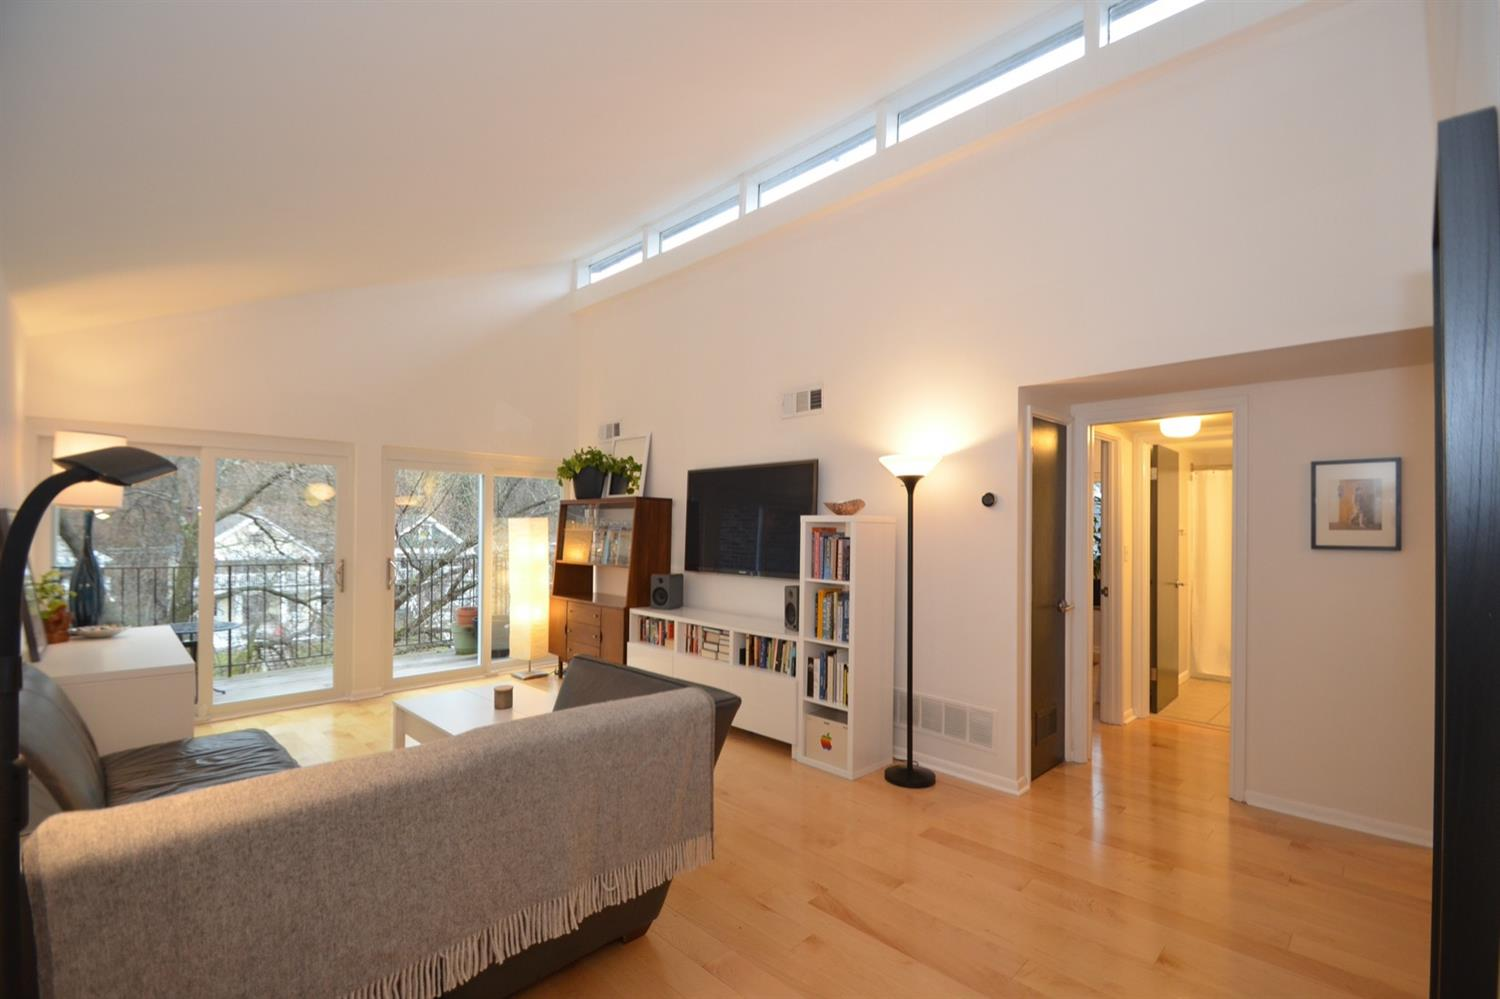 This (rarely available) top floor unit has vaulted ceiling and a row of clerestory windows to flood the living space with natural light - even on a gray winter day!